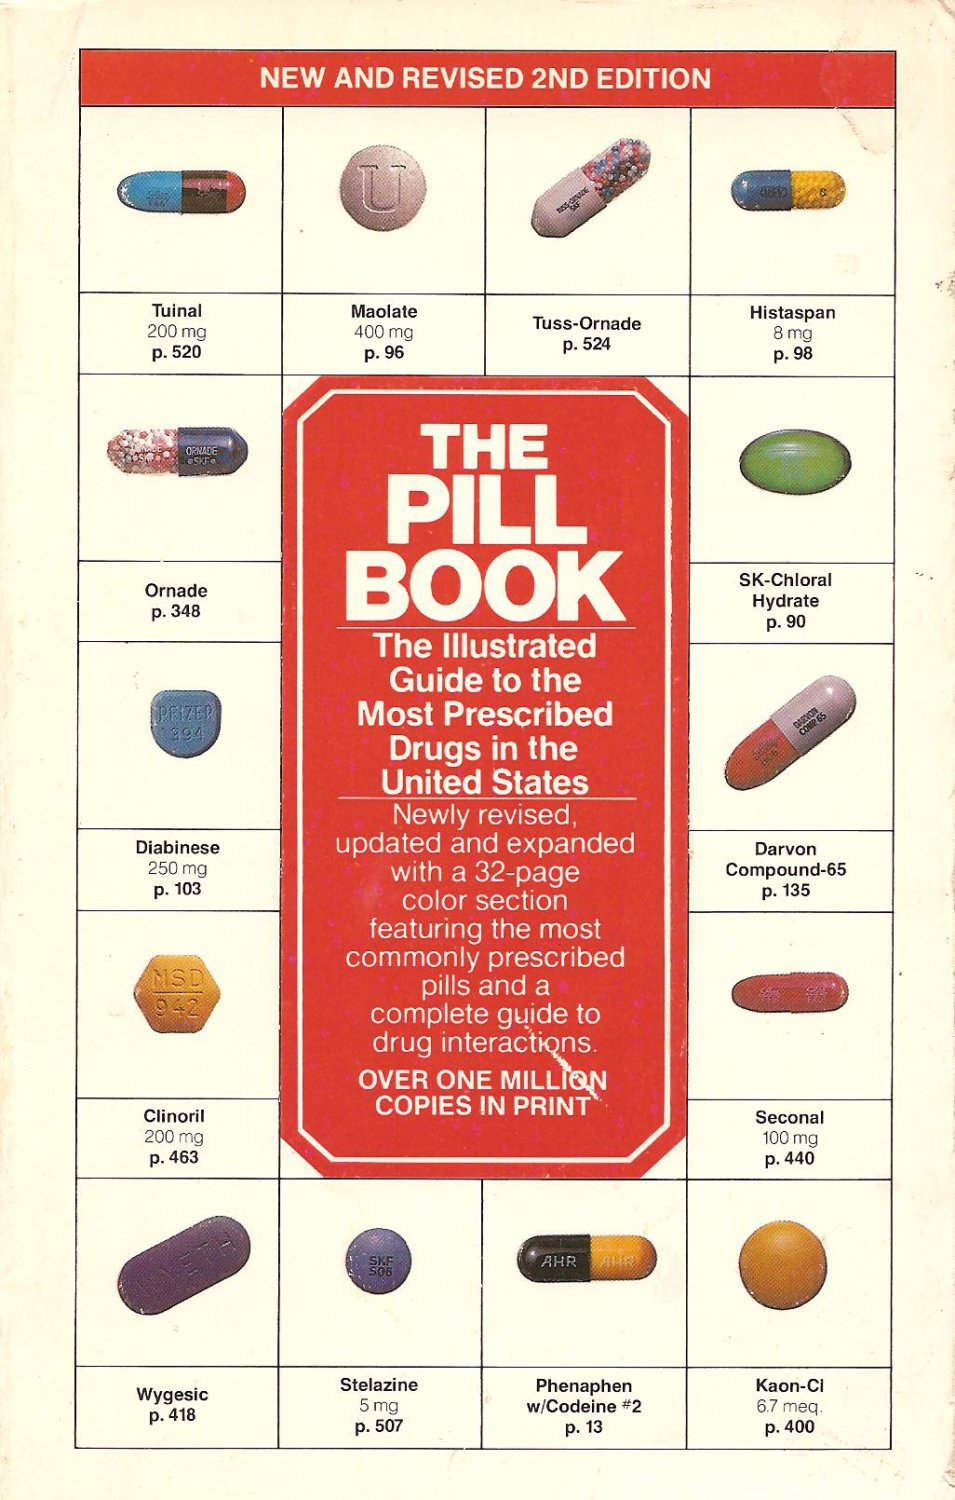 The Pill Book - New & Revised 2nd Edition